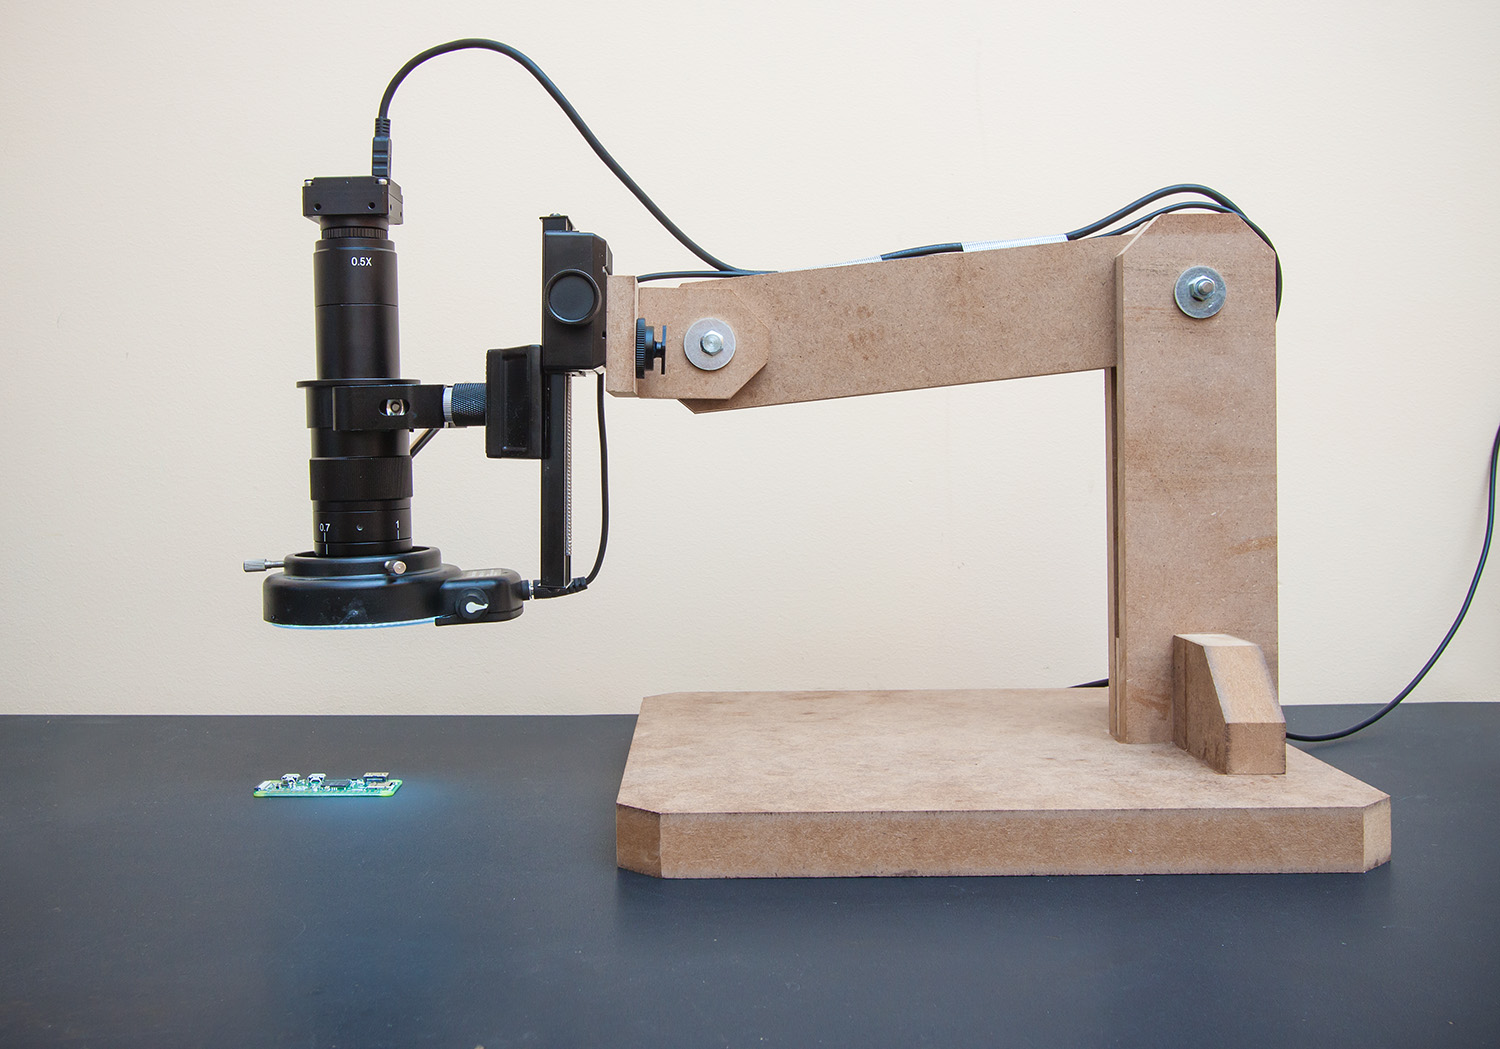 Build a Dirt Cheap Microscope Arm for Your Workbench